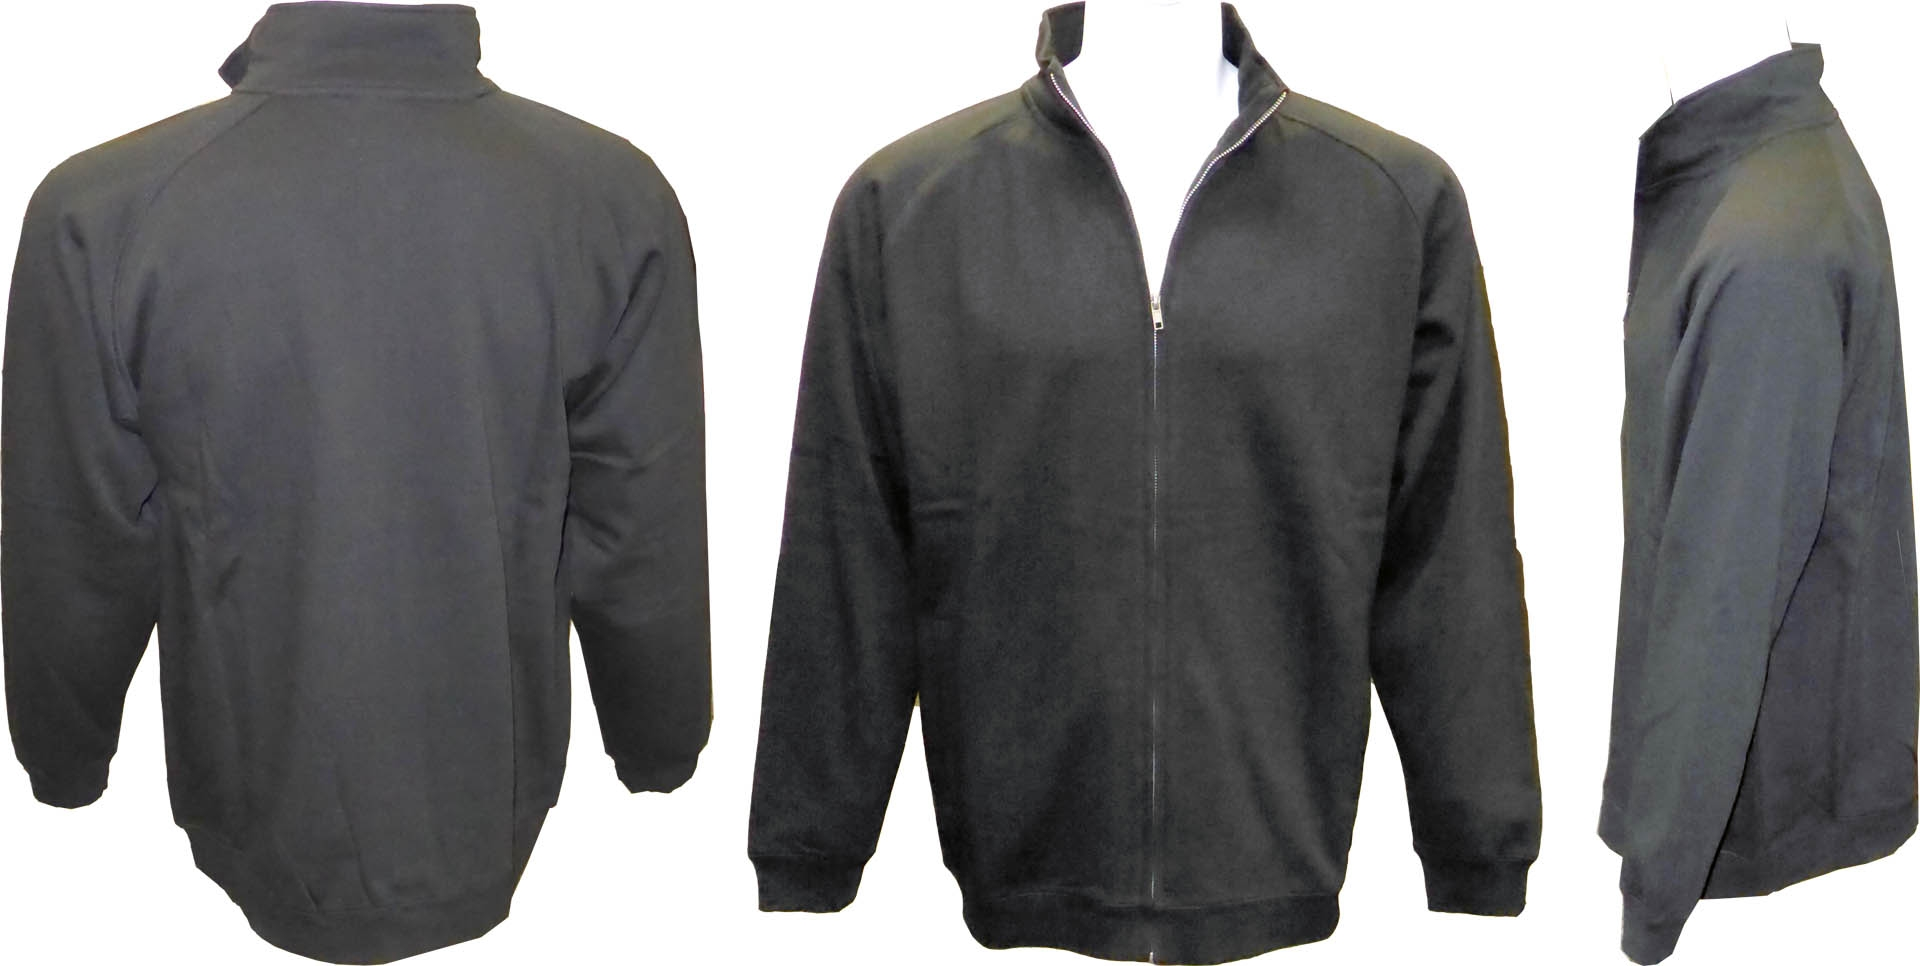 Adult Full Covered Zipper Fleece Sweatshirt Jacket